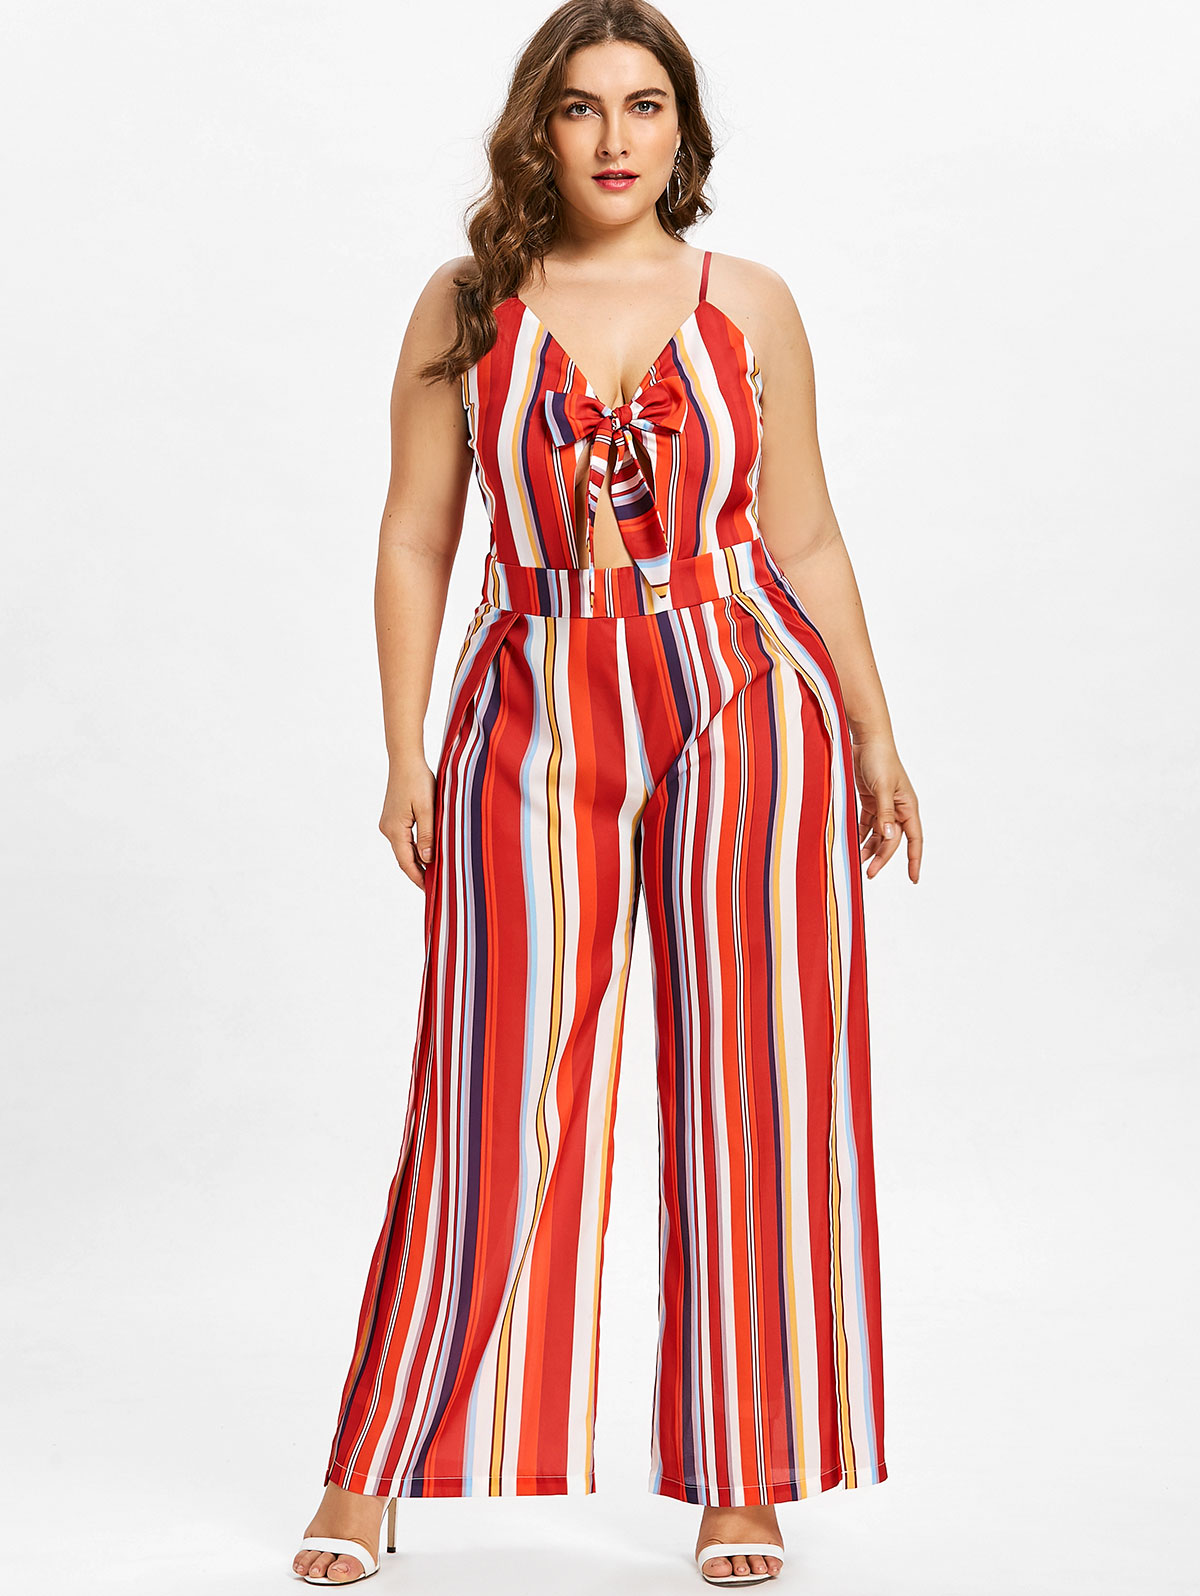 064fd1ce2d3 Buy maxi jumpsuits and get free shipping on AliExpress.com